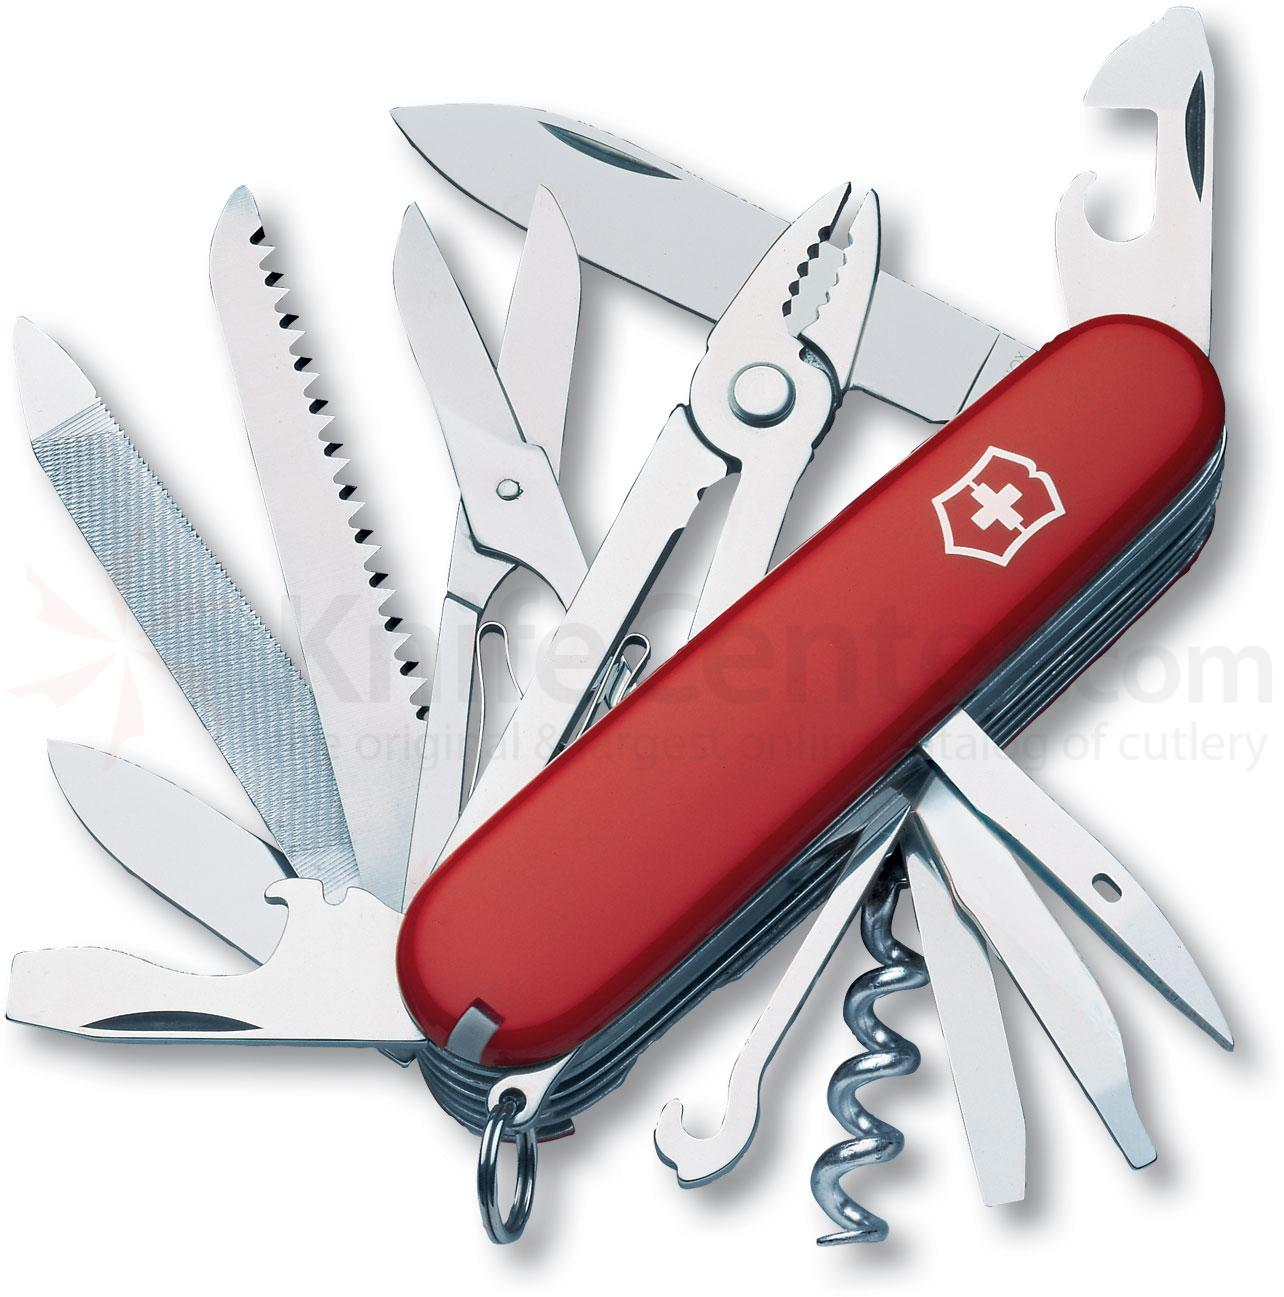 Victorinox Swiss Army Handyman Multi-Tool, Red, 3.58 inch Closed